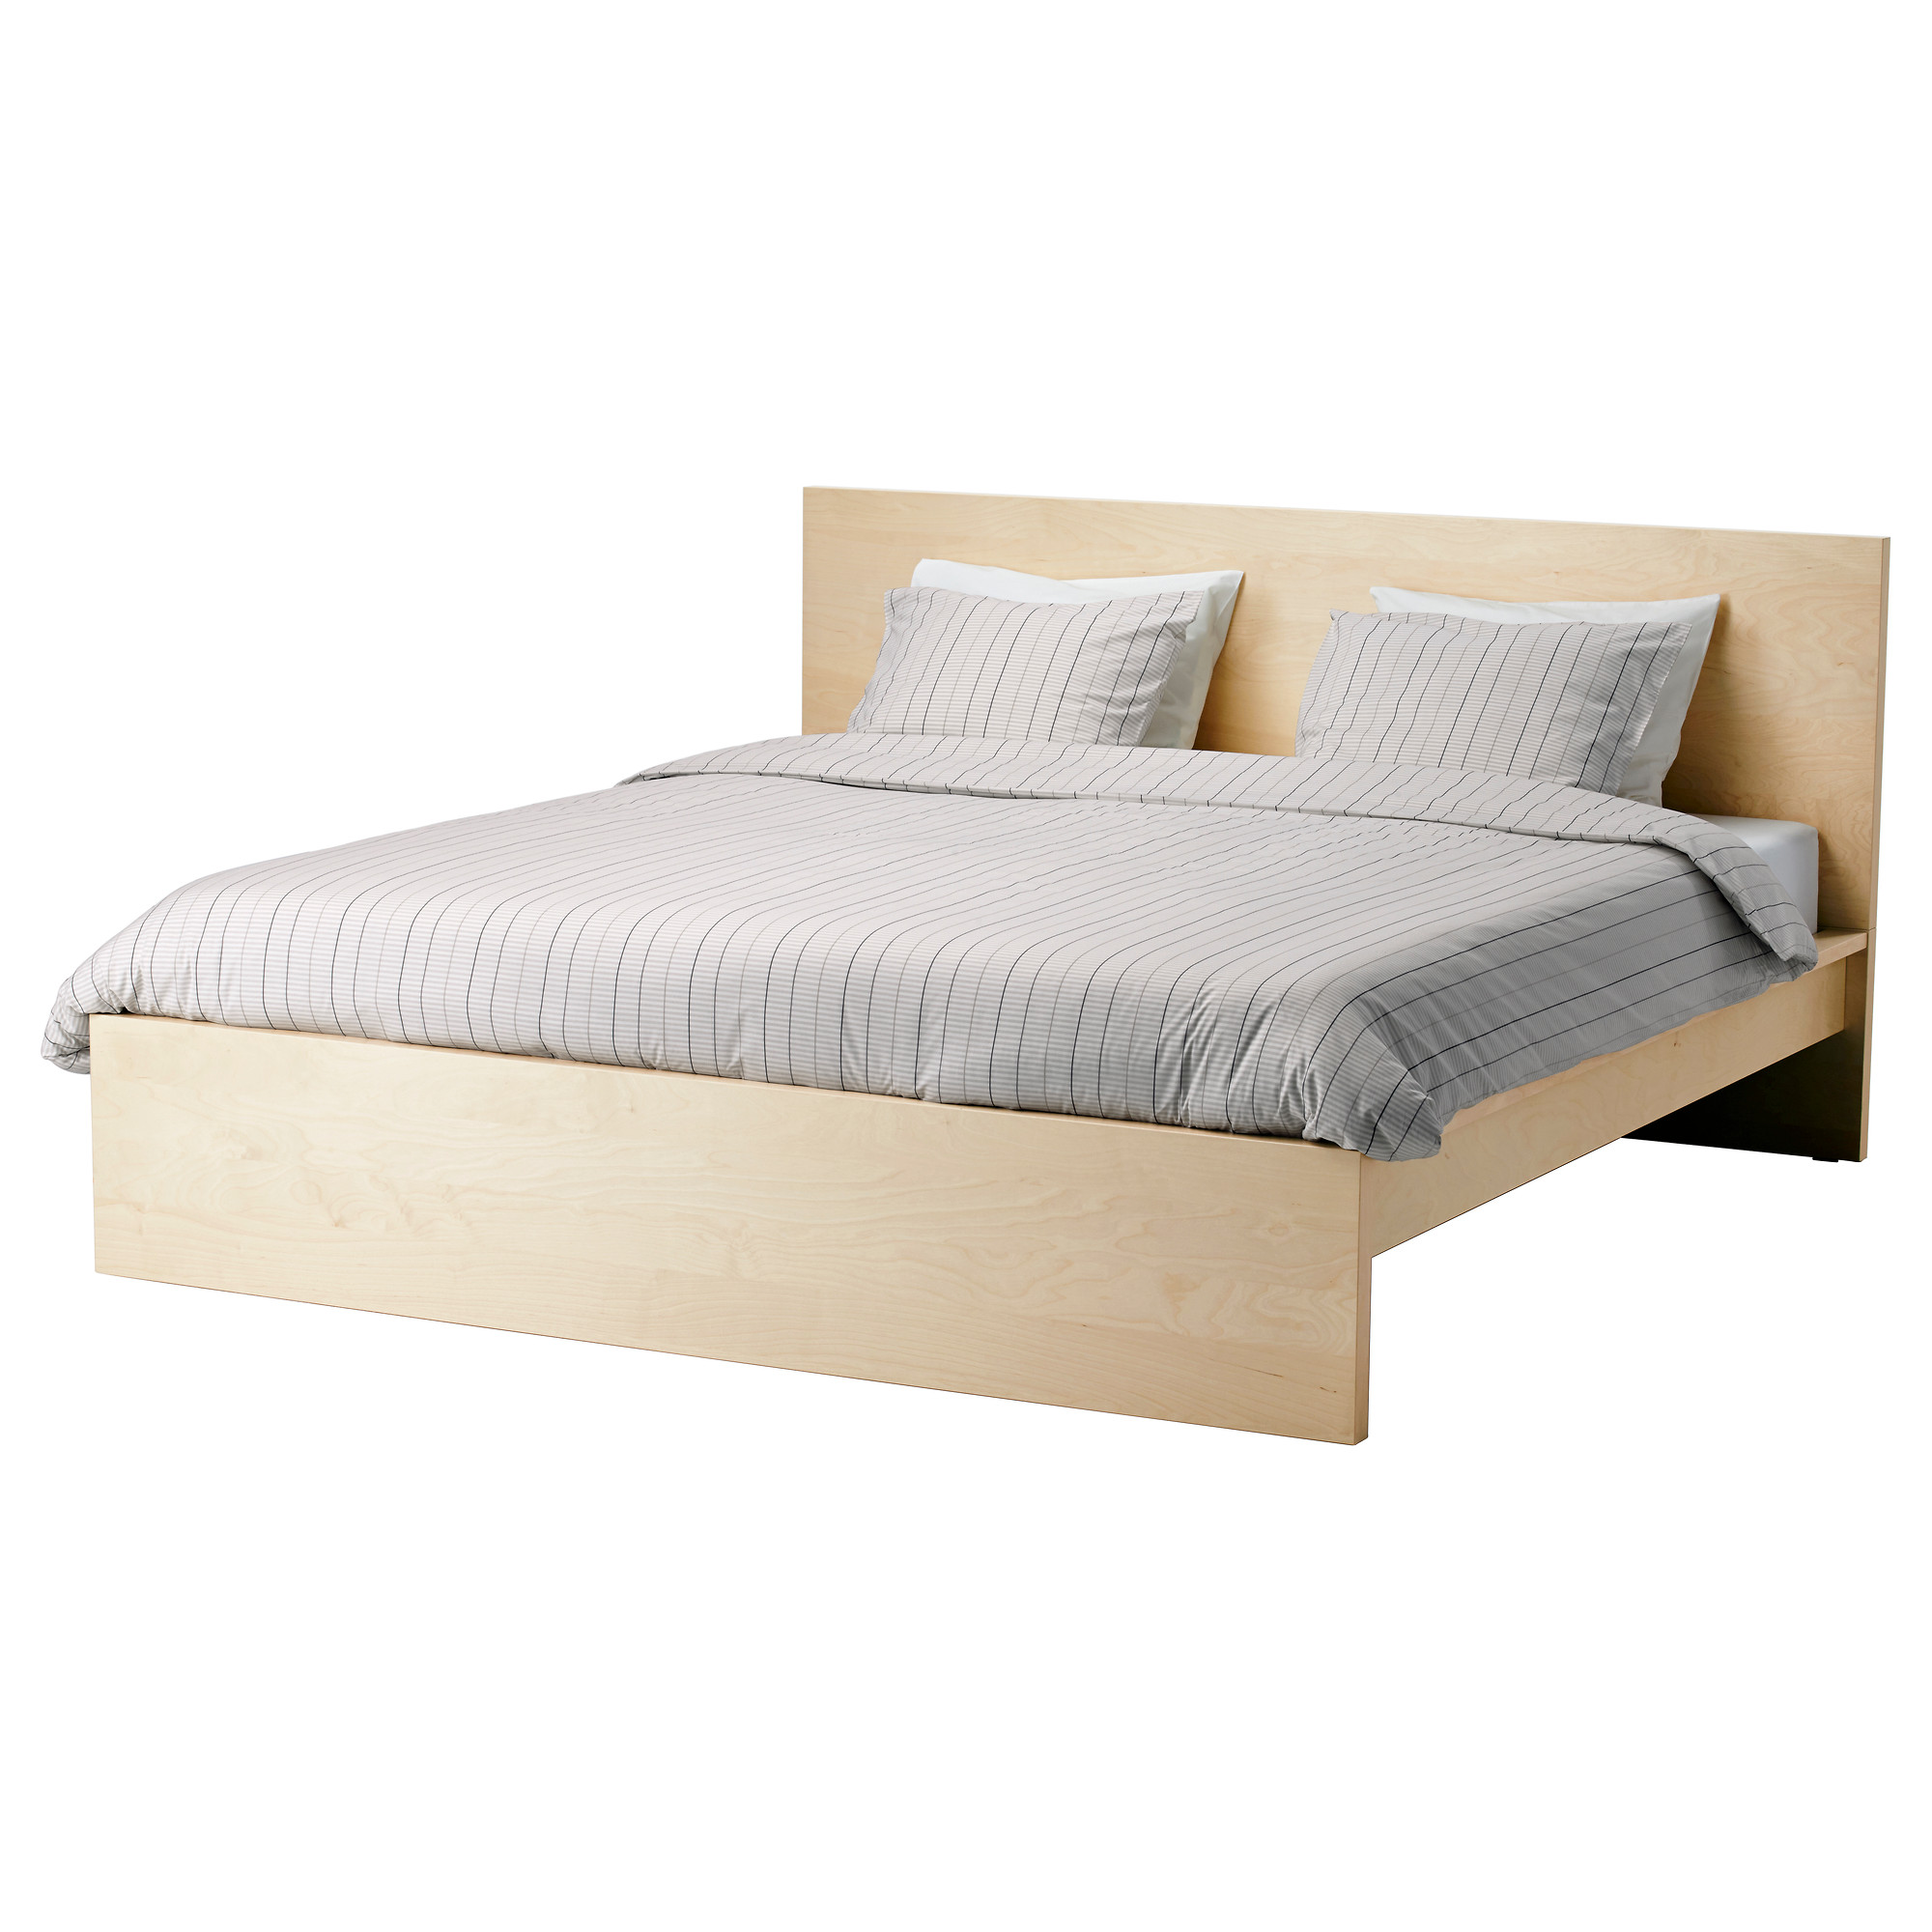 Kitchener Furniture Wanted Queen Ikea Malm Bed Frame Similar Victoria City